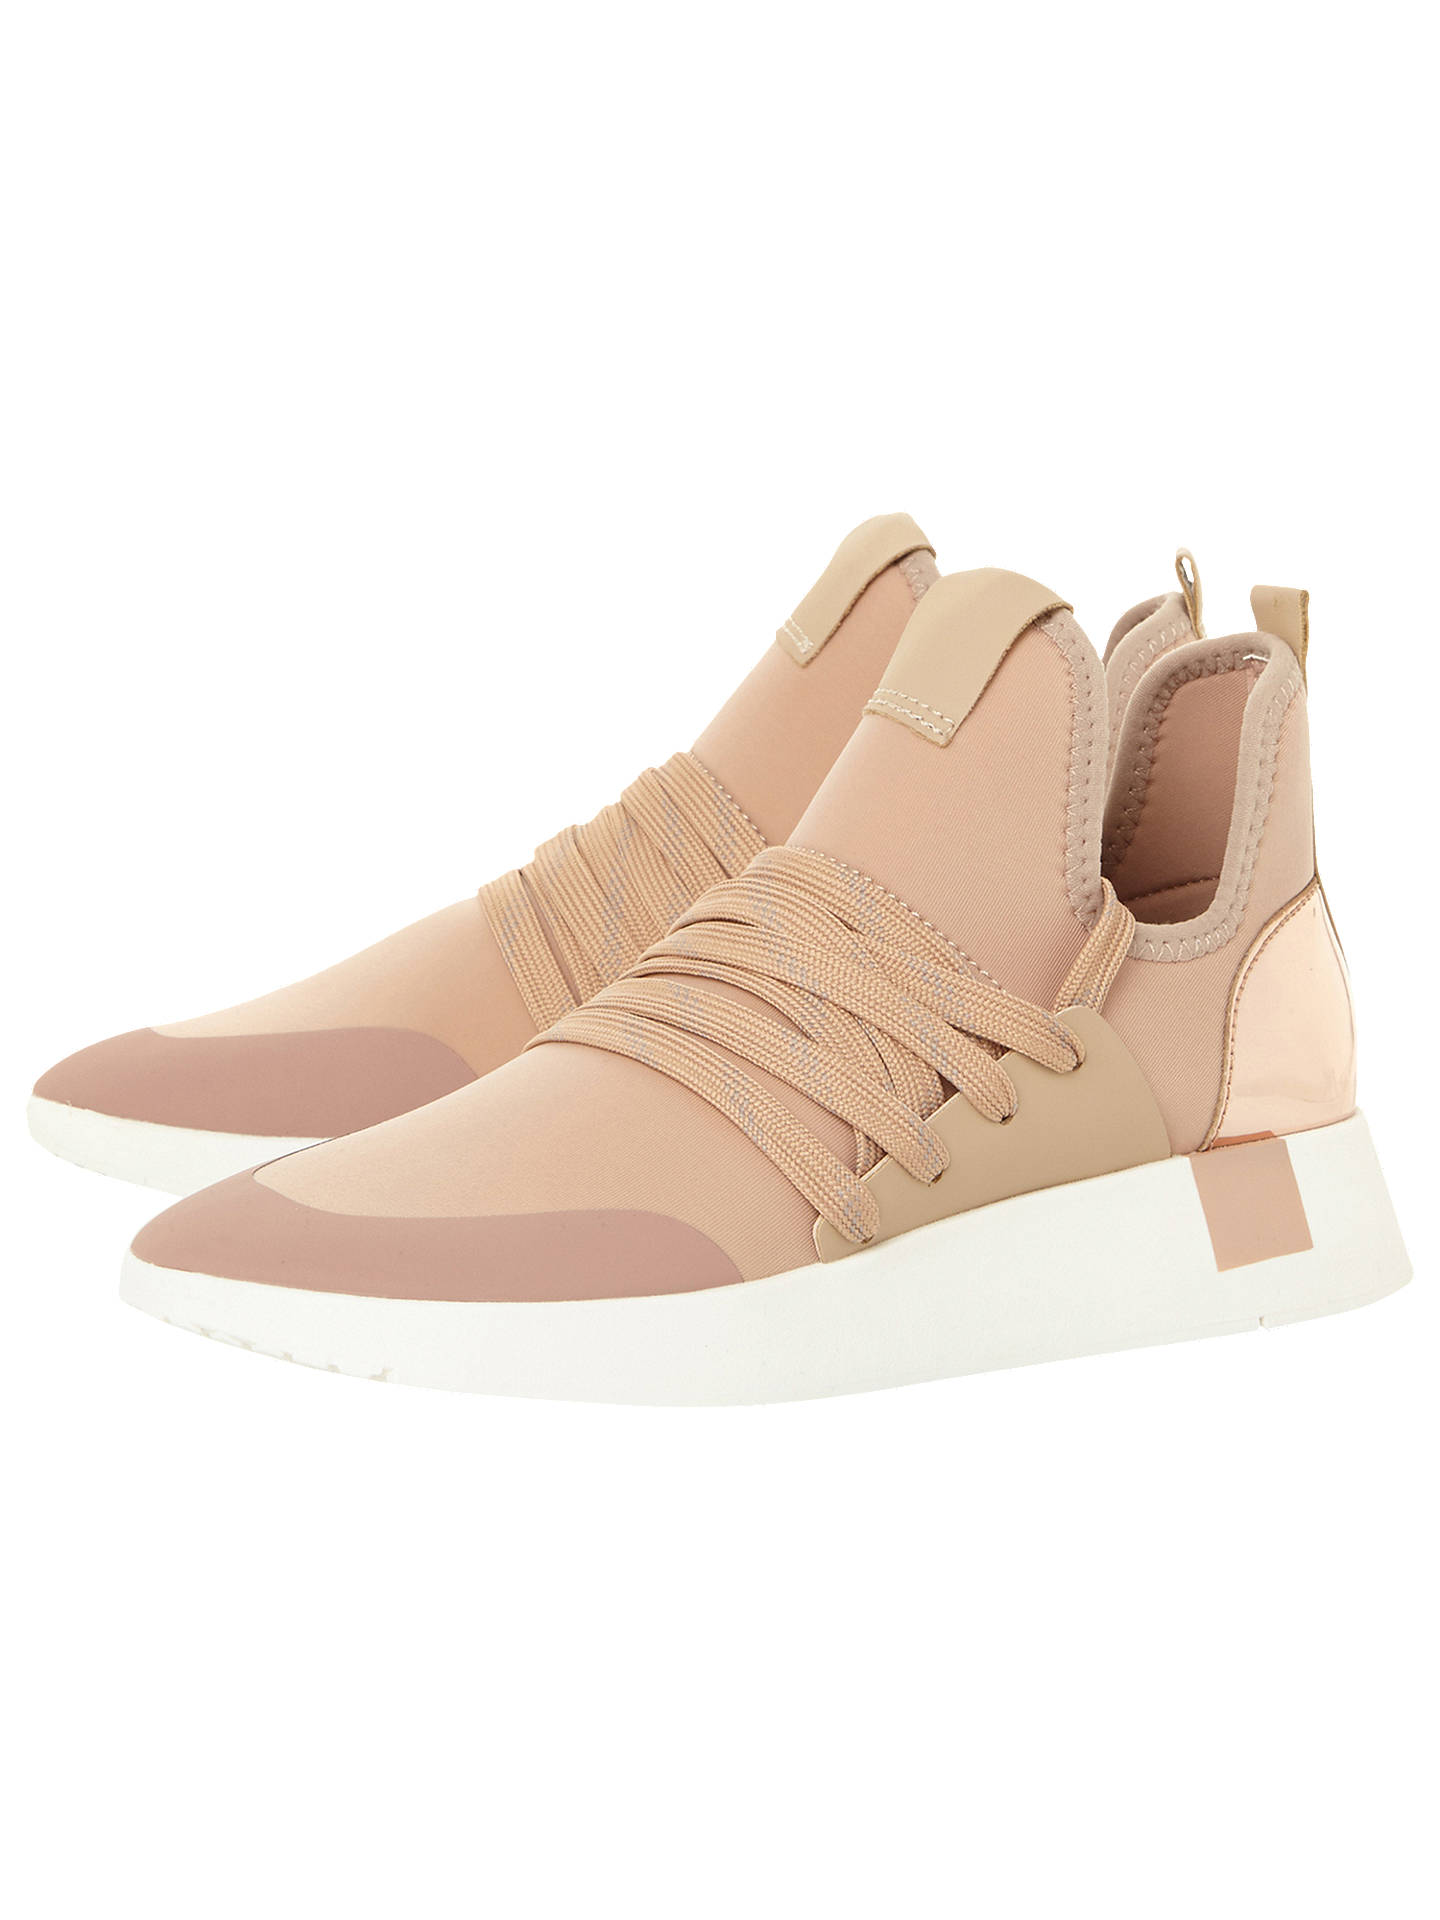 Buy Steve Madden Shady Trainers, Nude, 3 Online at johnlewis.com